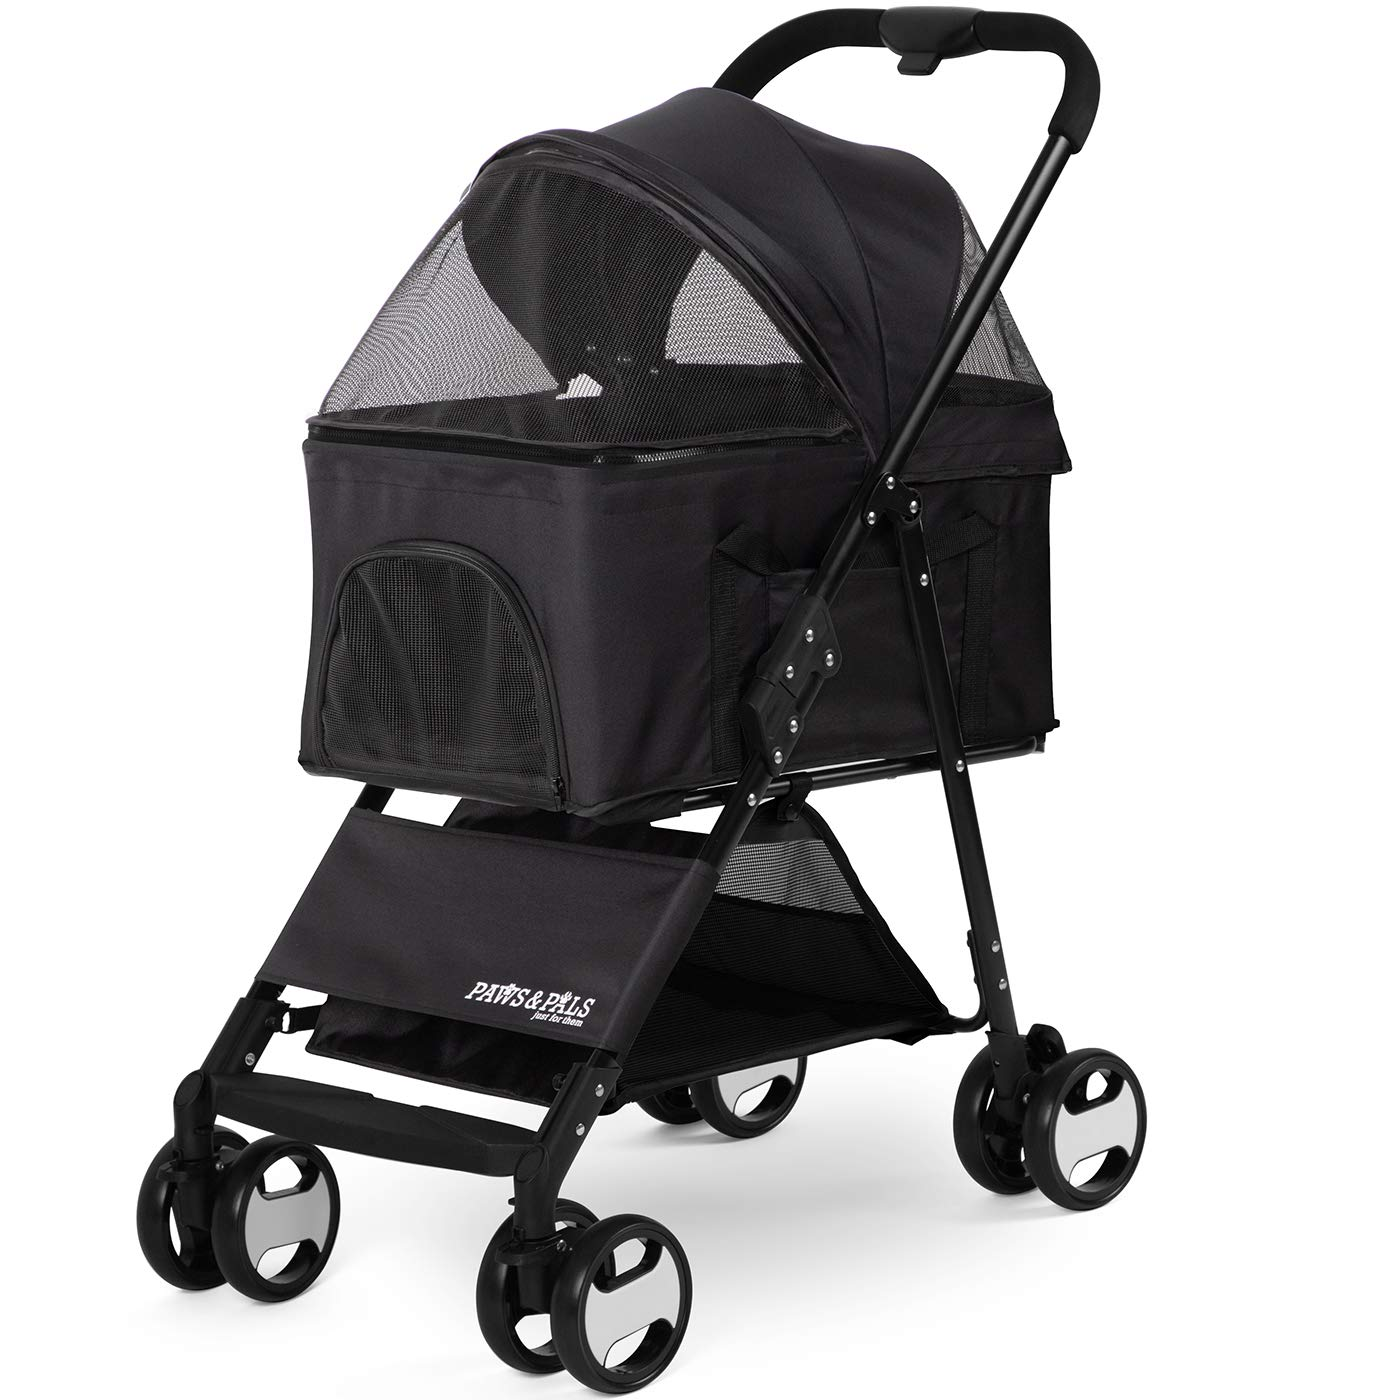 Paws & Pals Dog Stroller Easy to Walk Folding Travel Carriage for Pets & Cats with Detachable Carrier - Black by Paws & Pals